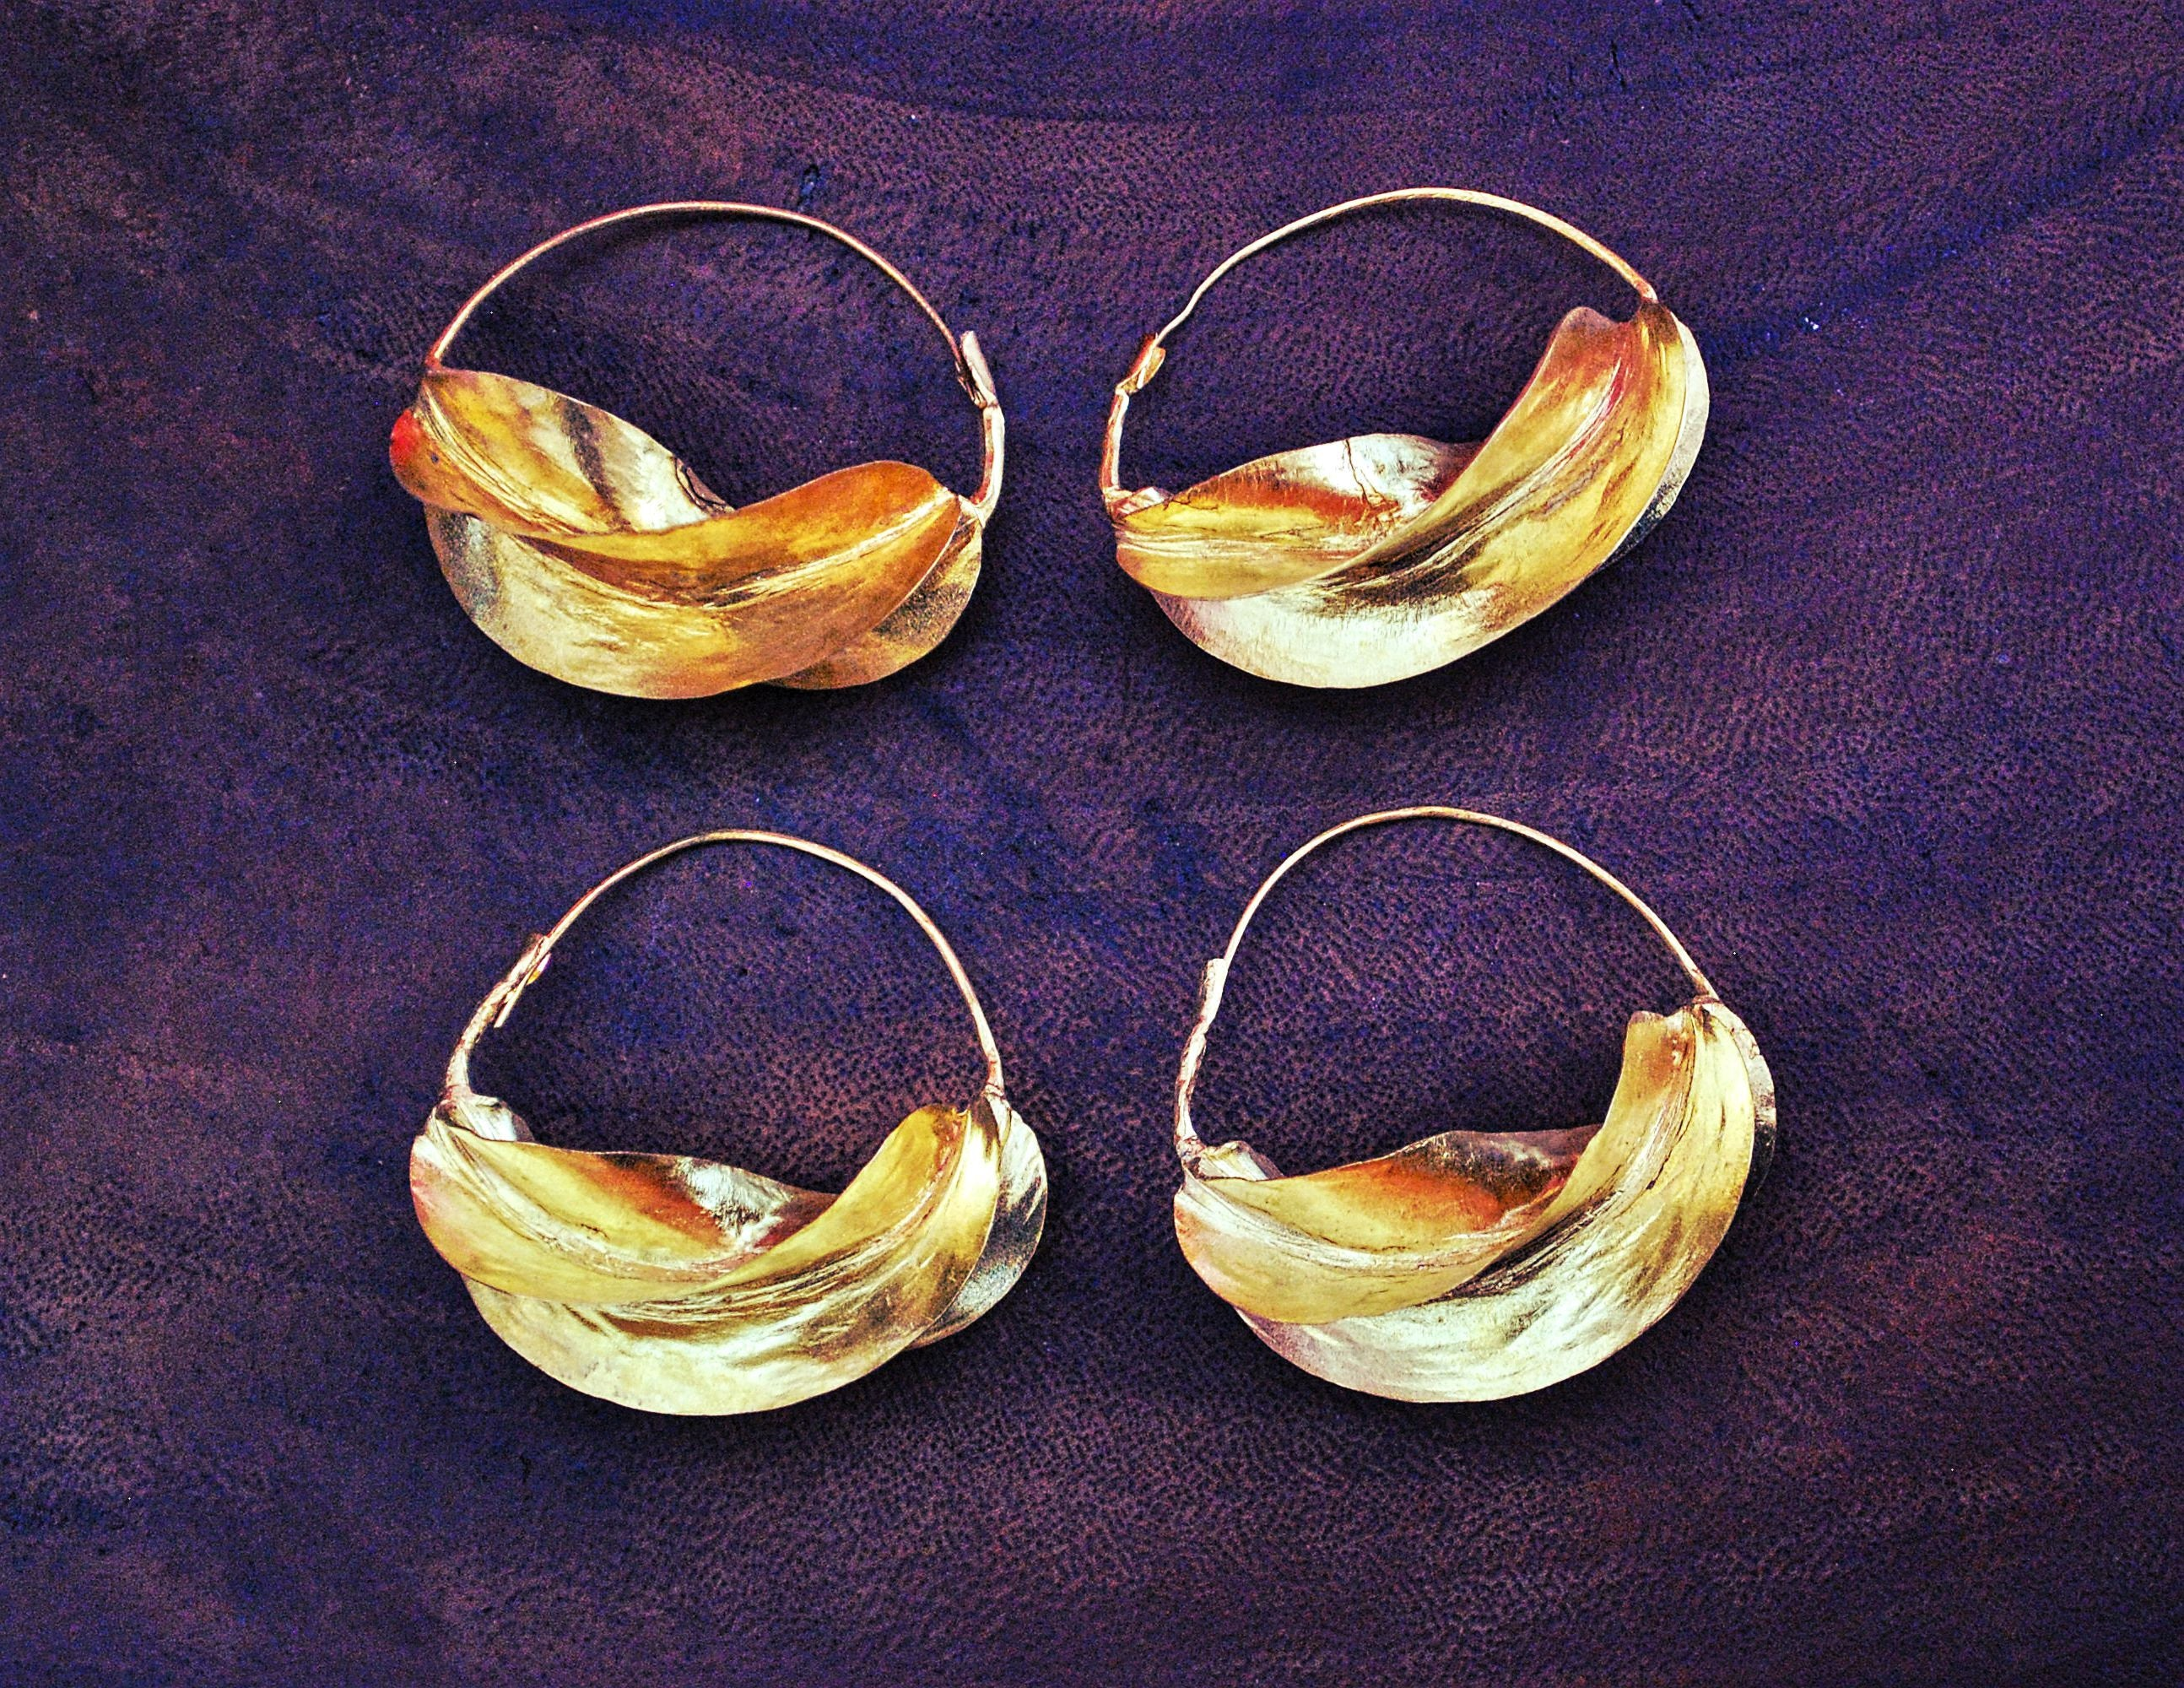 Tribal Fulani Hoop Earrings XL - Gold Plate Copper Hoop Earrings- Ethnic Tribal Hoop Earrings - Fulani Jewelry - Fulani Hoop Earrings